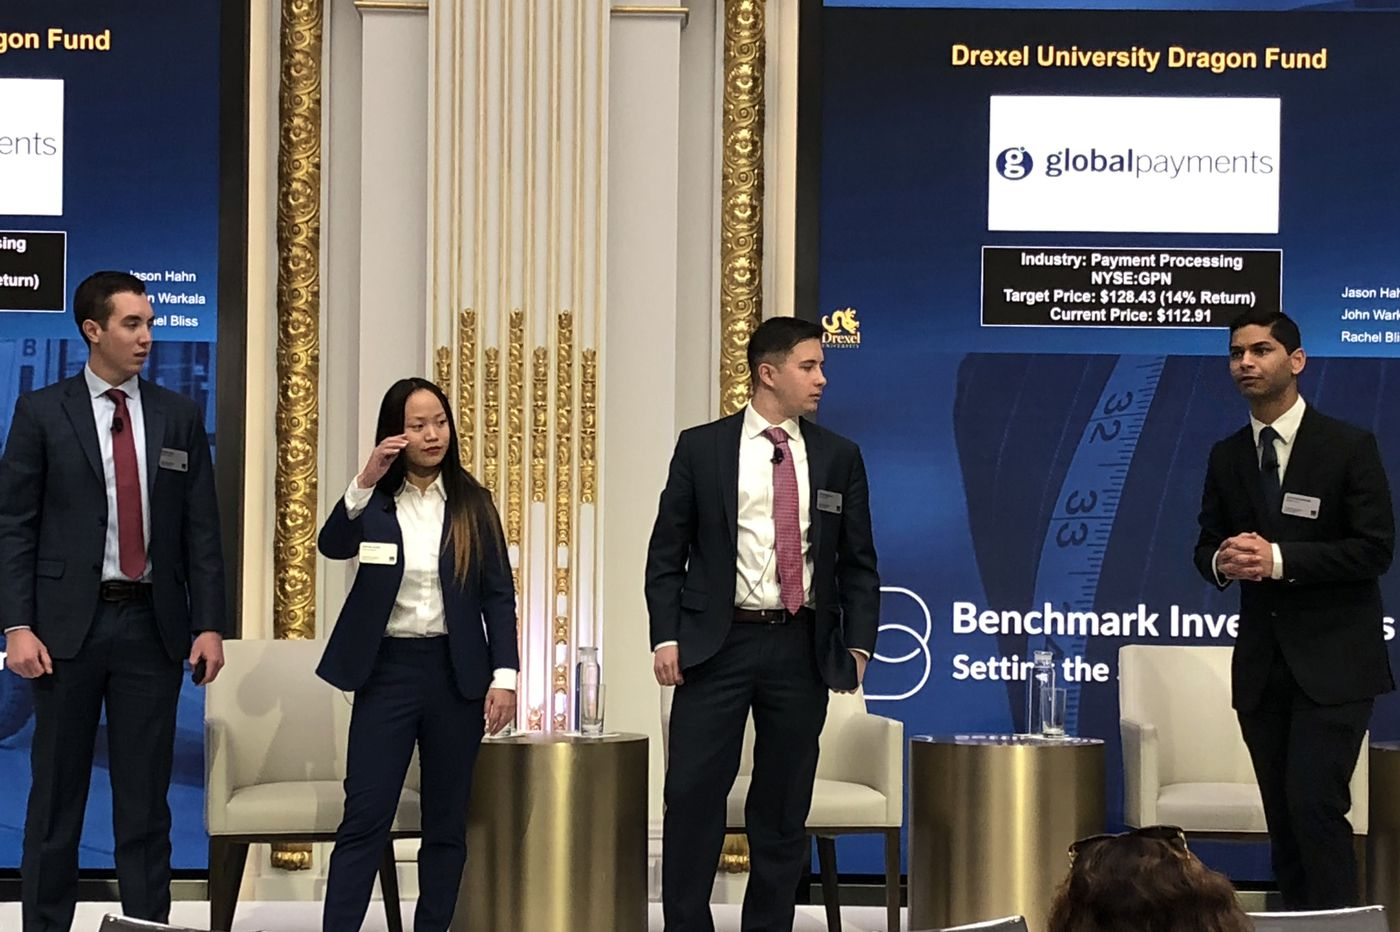 The student-run Drexel Dragon Fund presents best investment ideas at NYSE